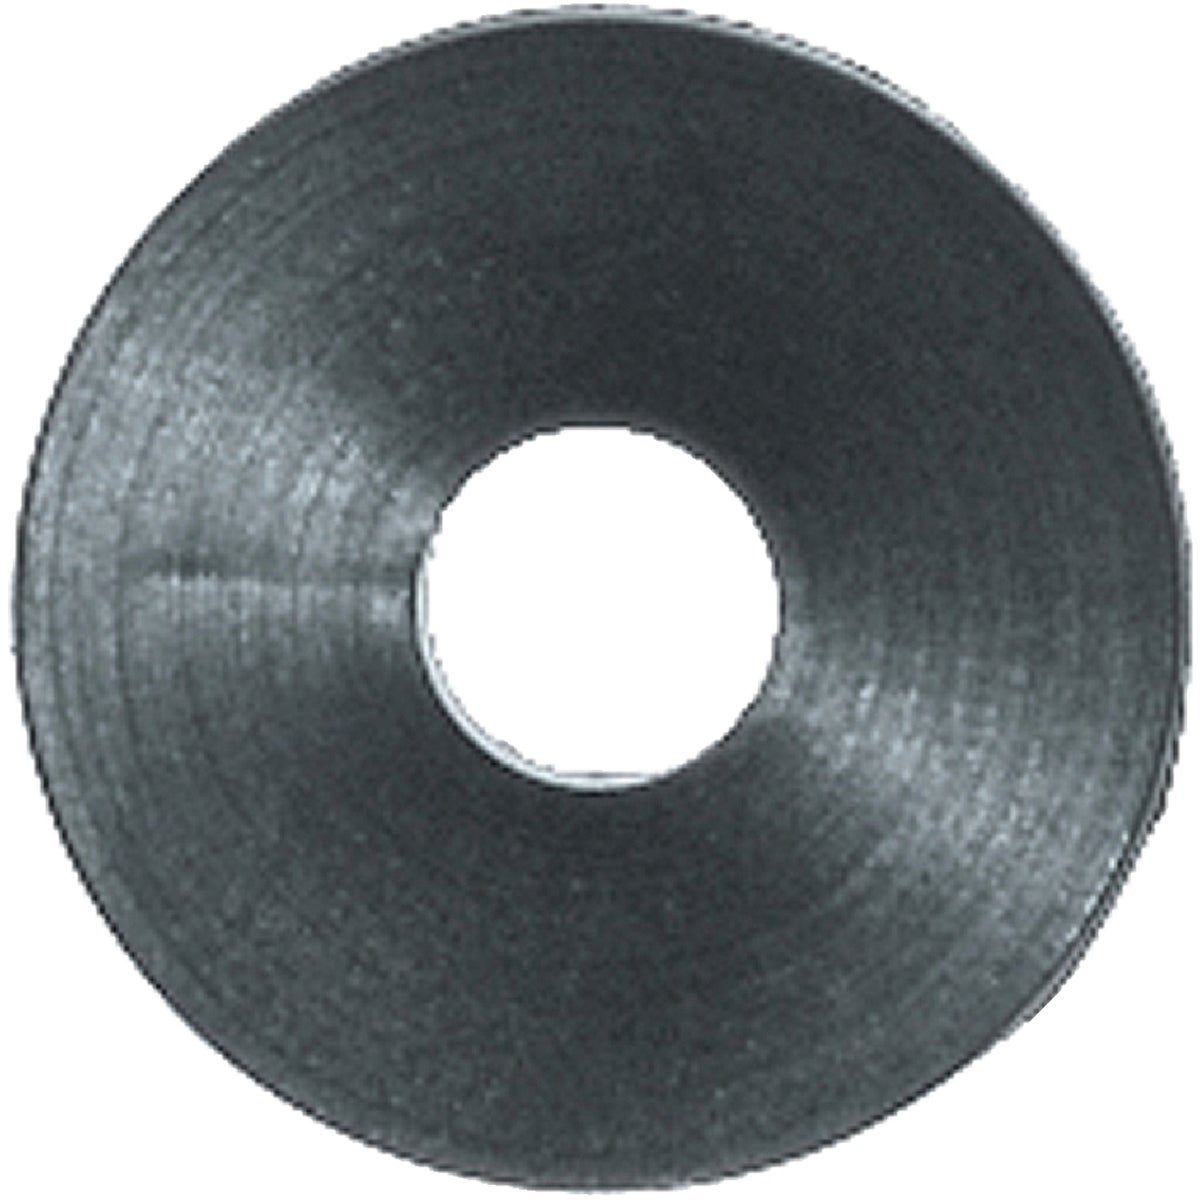 3/8 FLAT WASHER - 35066B by Danco Perfect Match